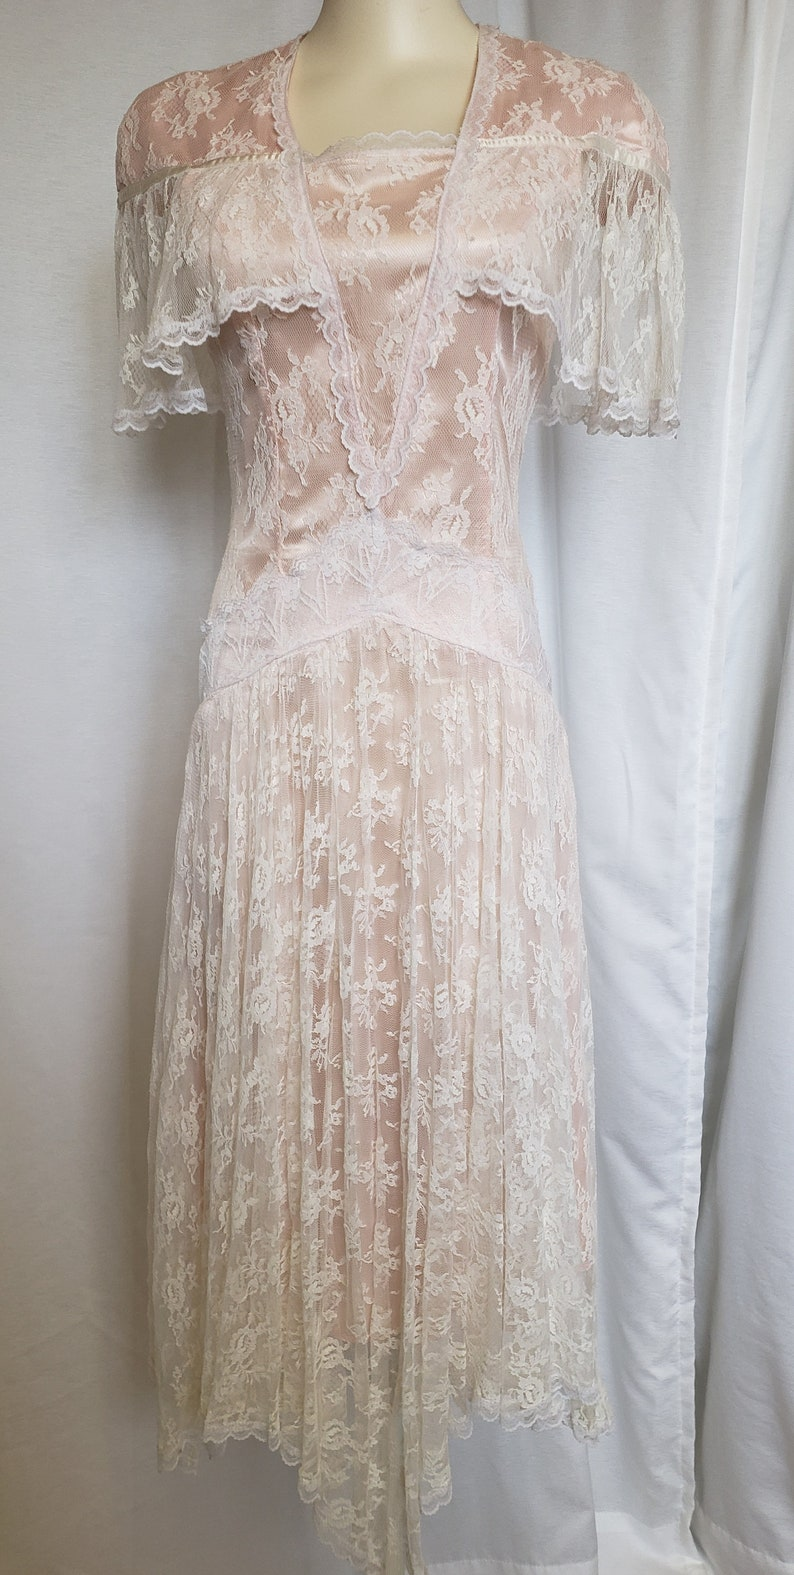 Modest, Mature, Mrs. Vintage Dresses – 20s, 30s, 40s, 50s, 60s Small 1970s Flapper Dress Lace  SophisticatedLaRue $105.00 AT vintagedancer.com